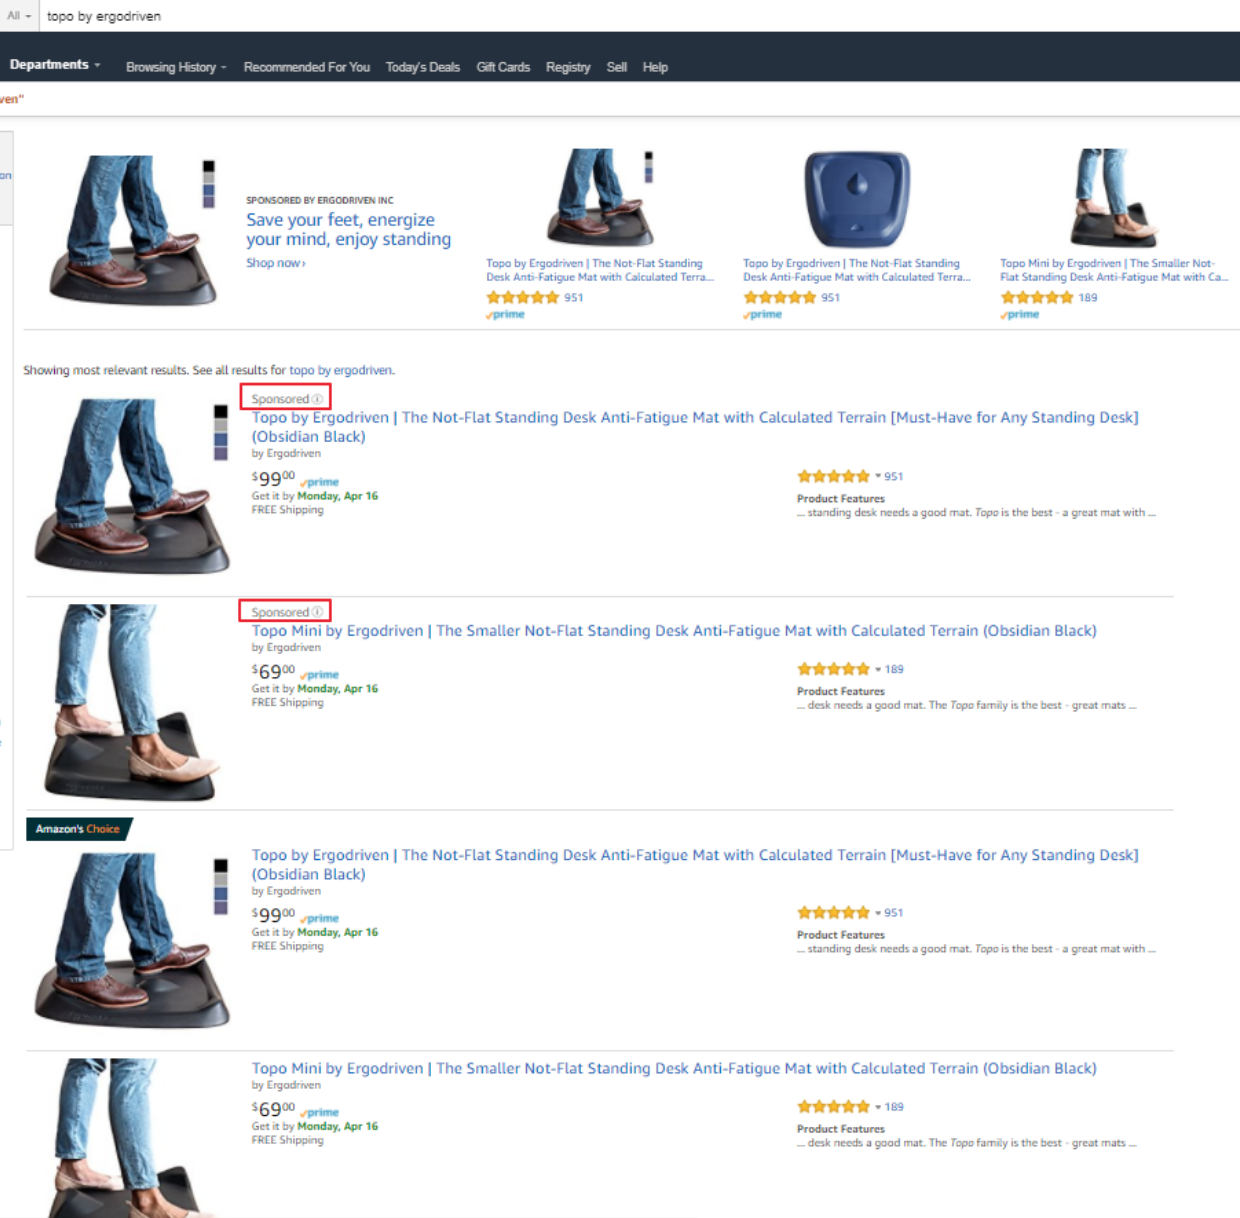 Screenshot showing search results on amazon